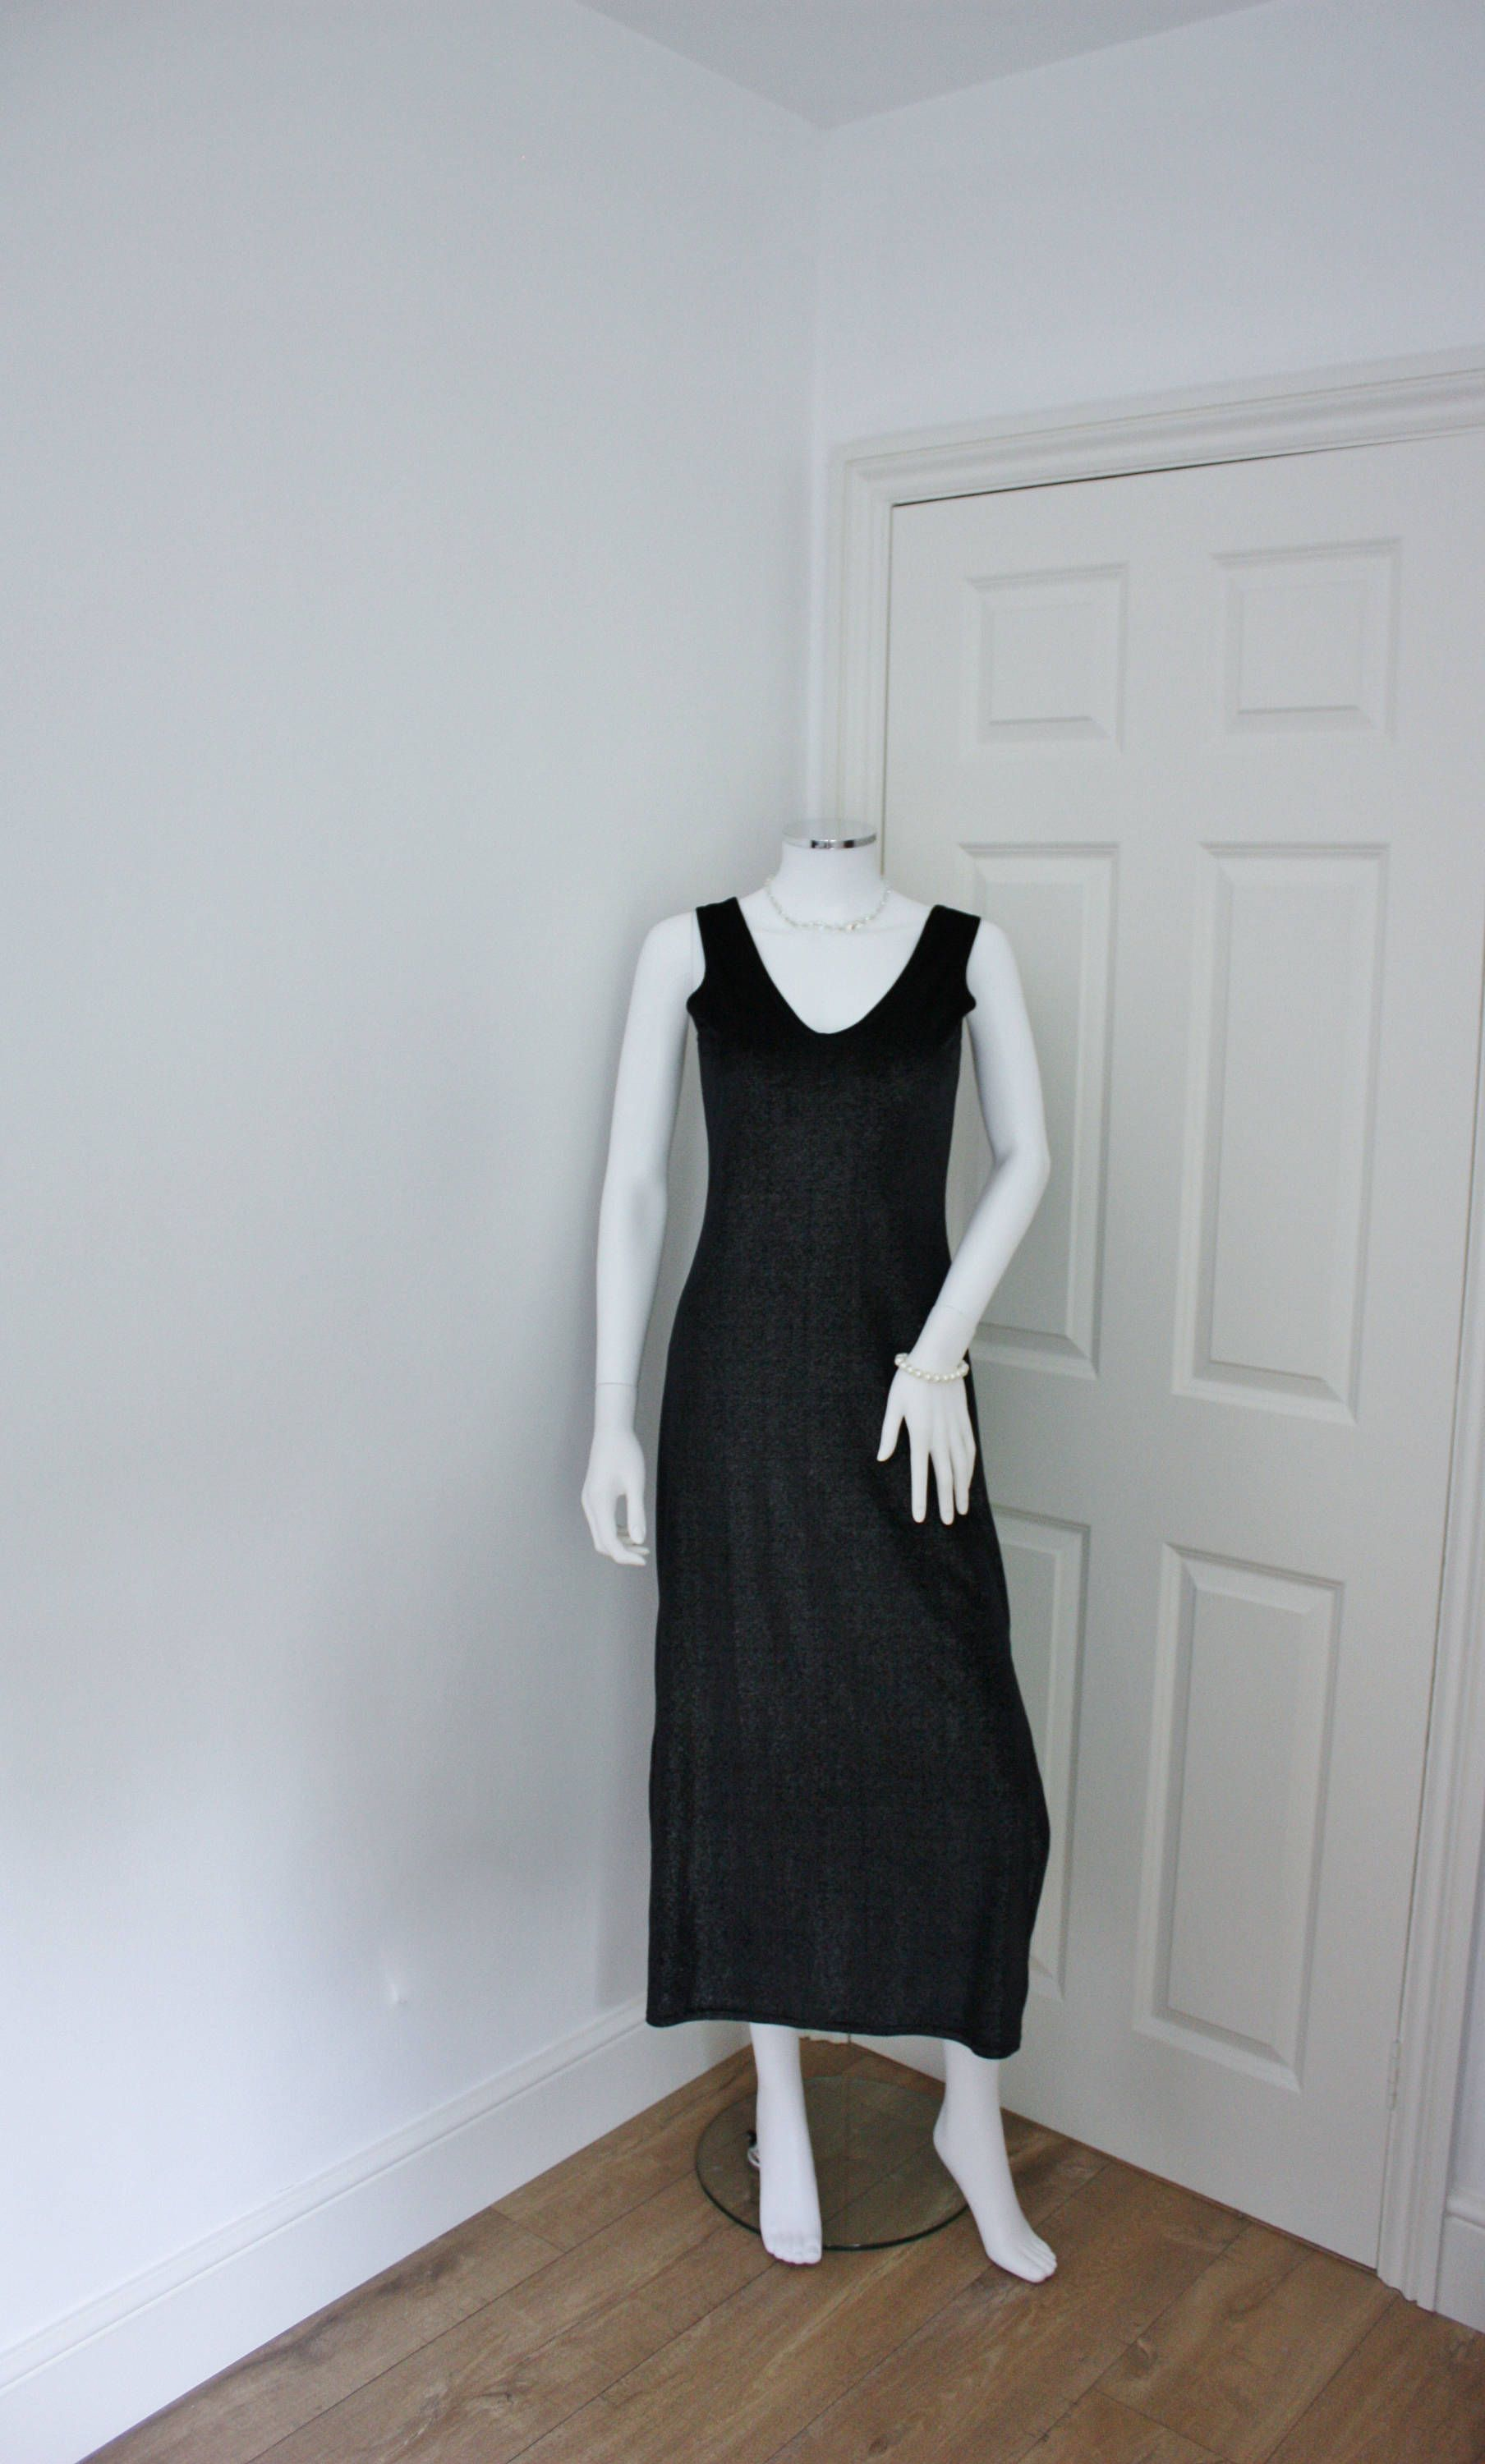 Black maxi dress long length form fitting extra small size